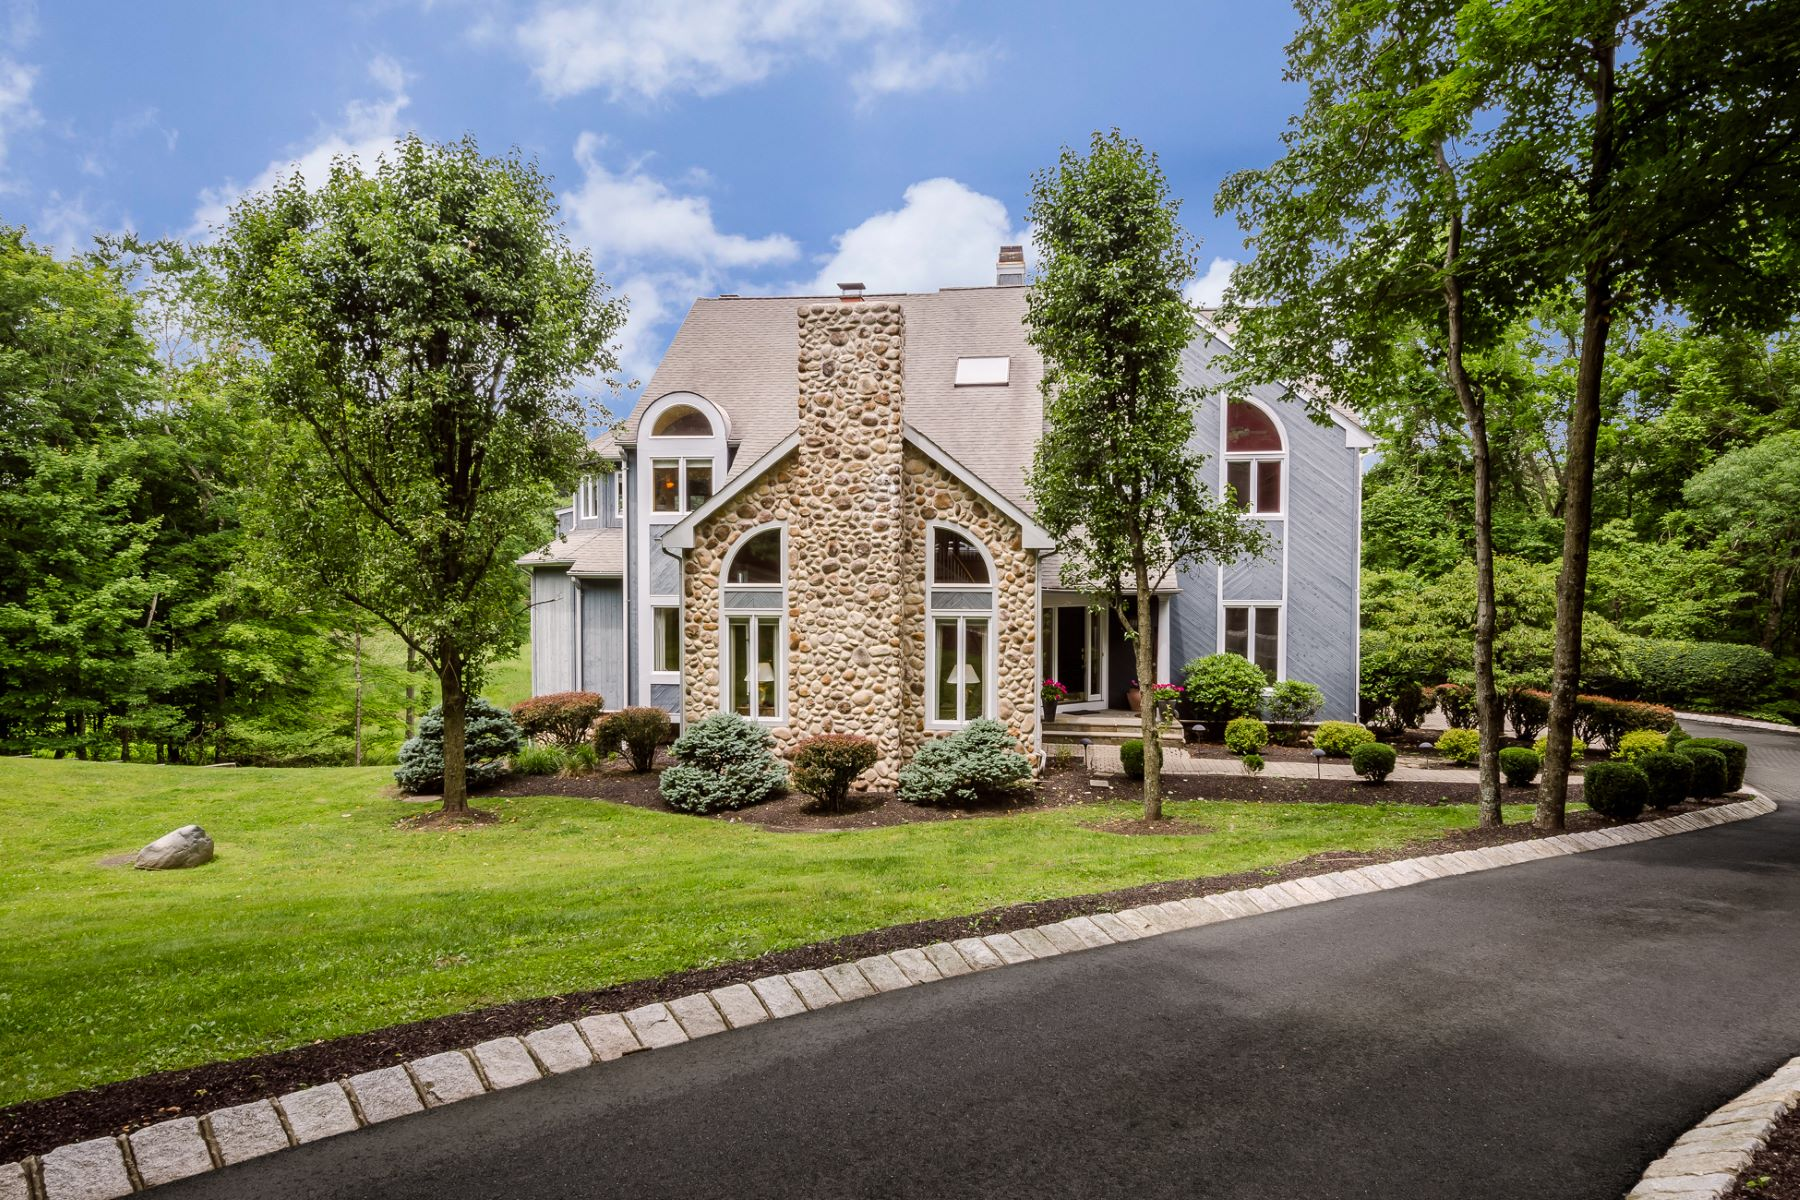 Single Family Homes for Sale at Beautiful Custom Home With Picture Perfect Views 12 Pond View Lane, Titusville, New Jersey 08560 United States